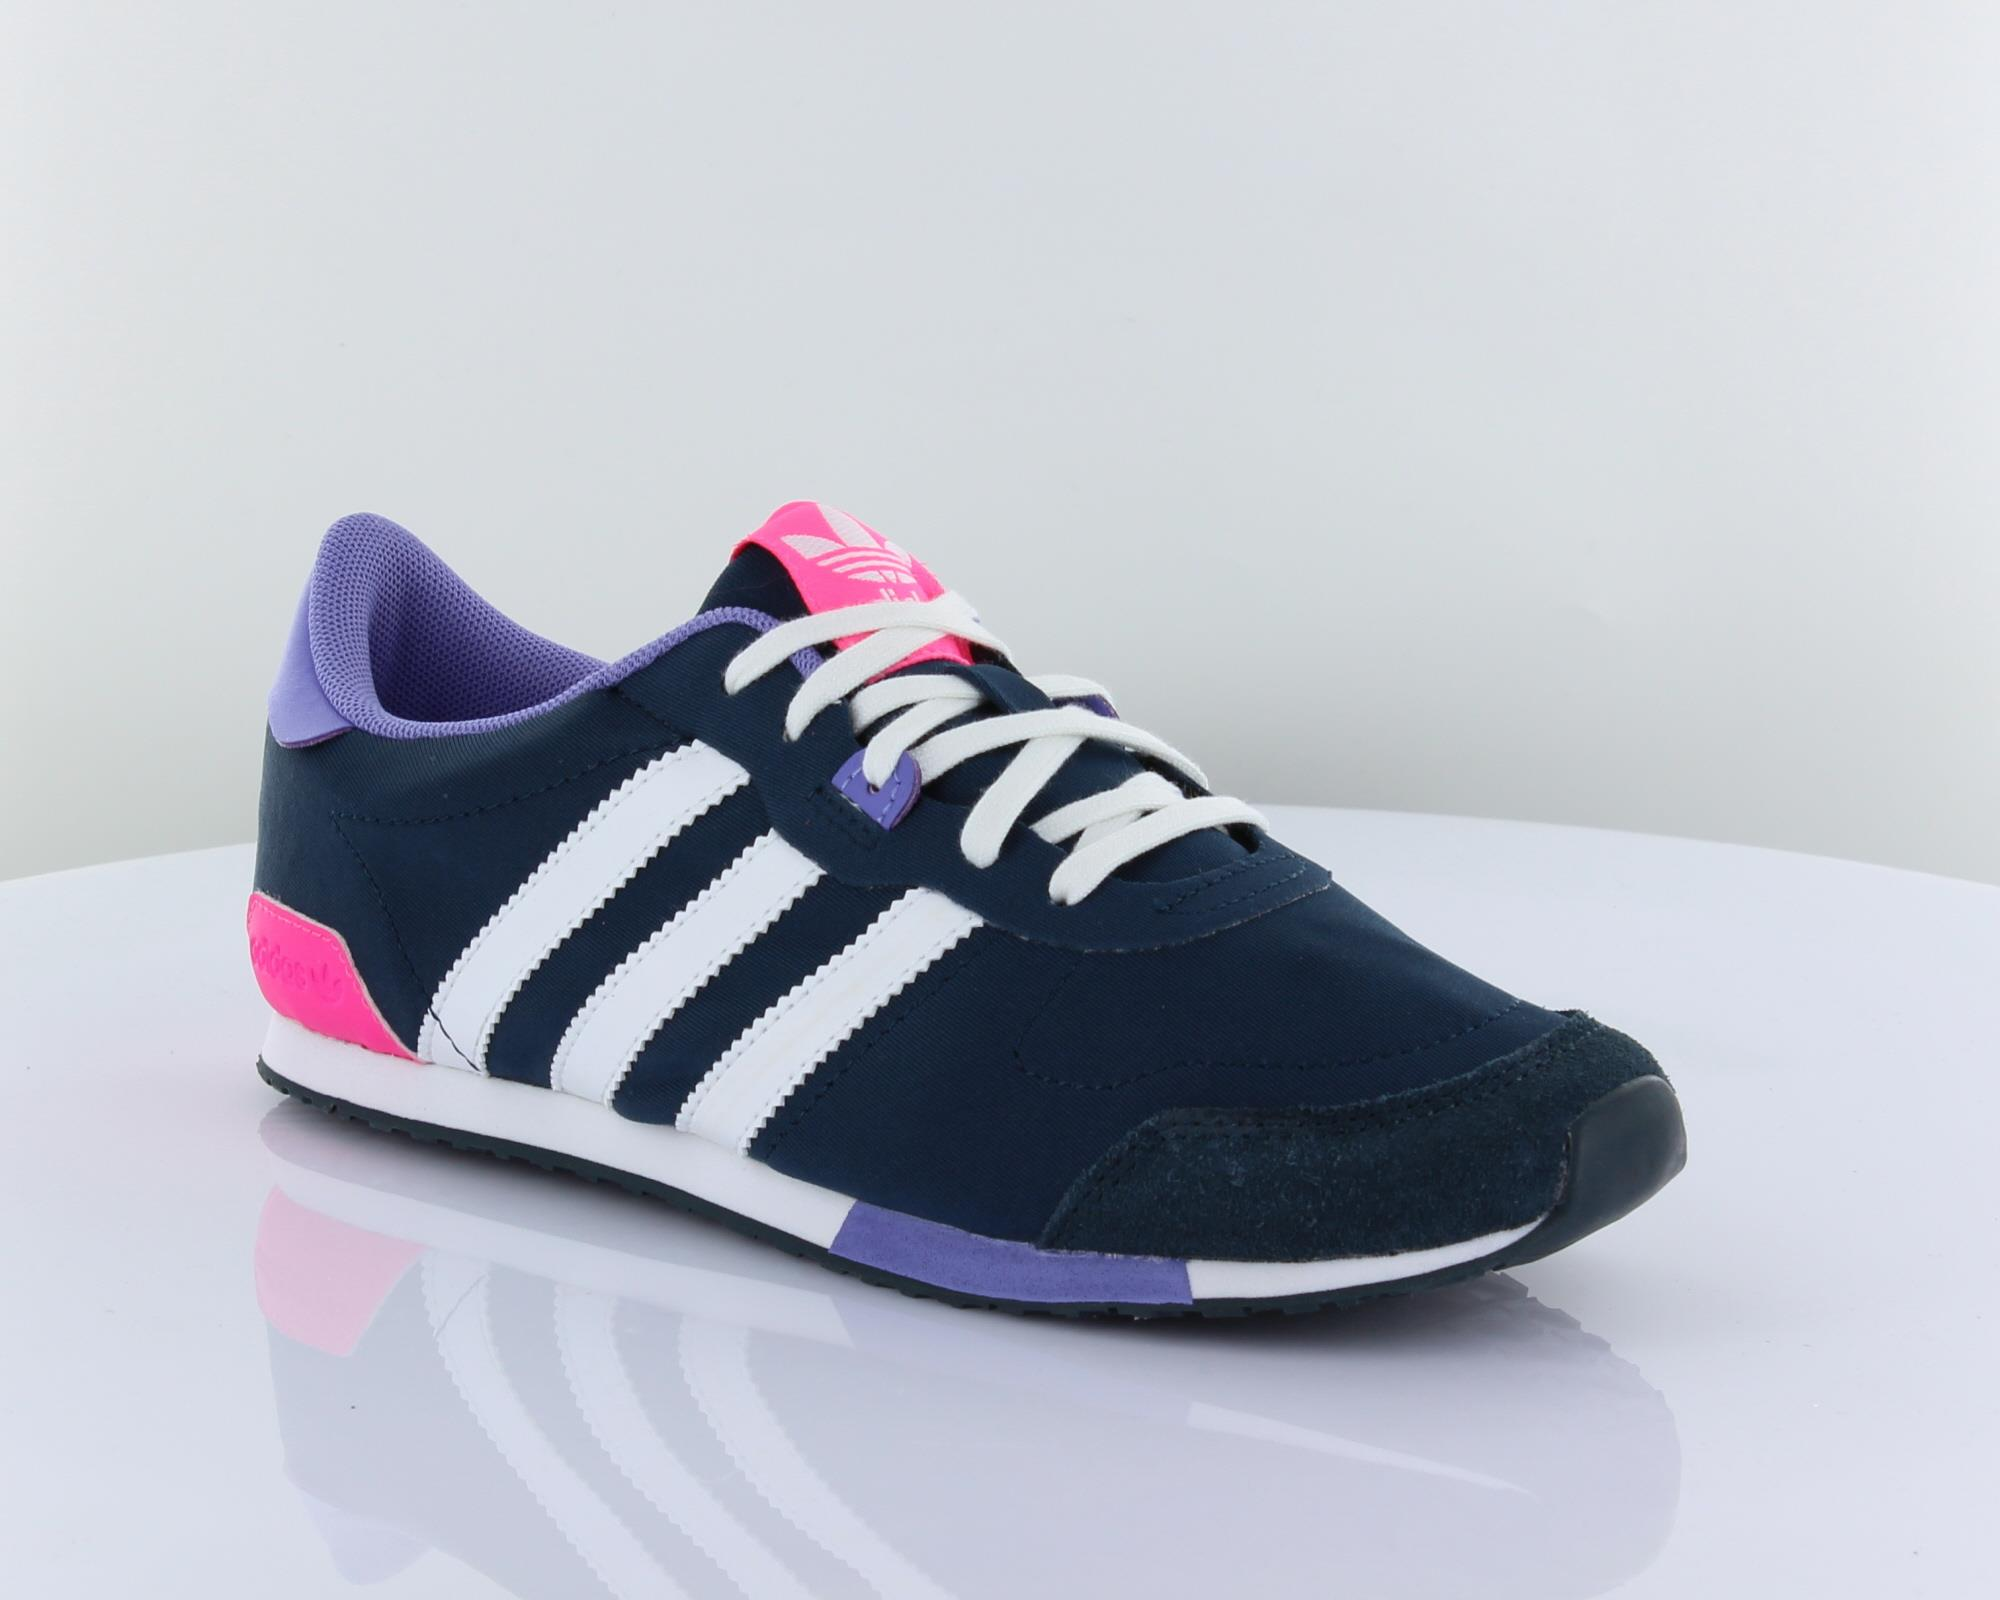 Adidas ZX 700 BE LO W Navy Purple Pink Womens Retro Casual Shoes Sneakers M19384